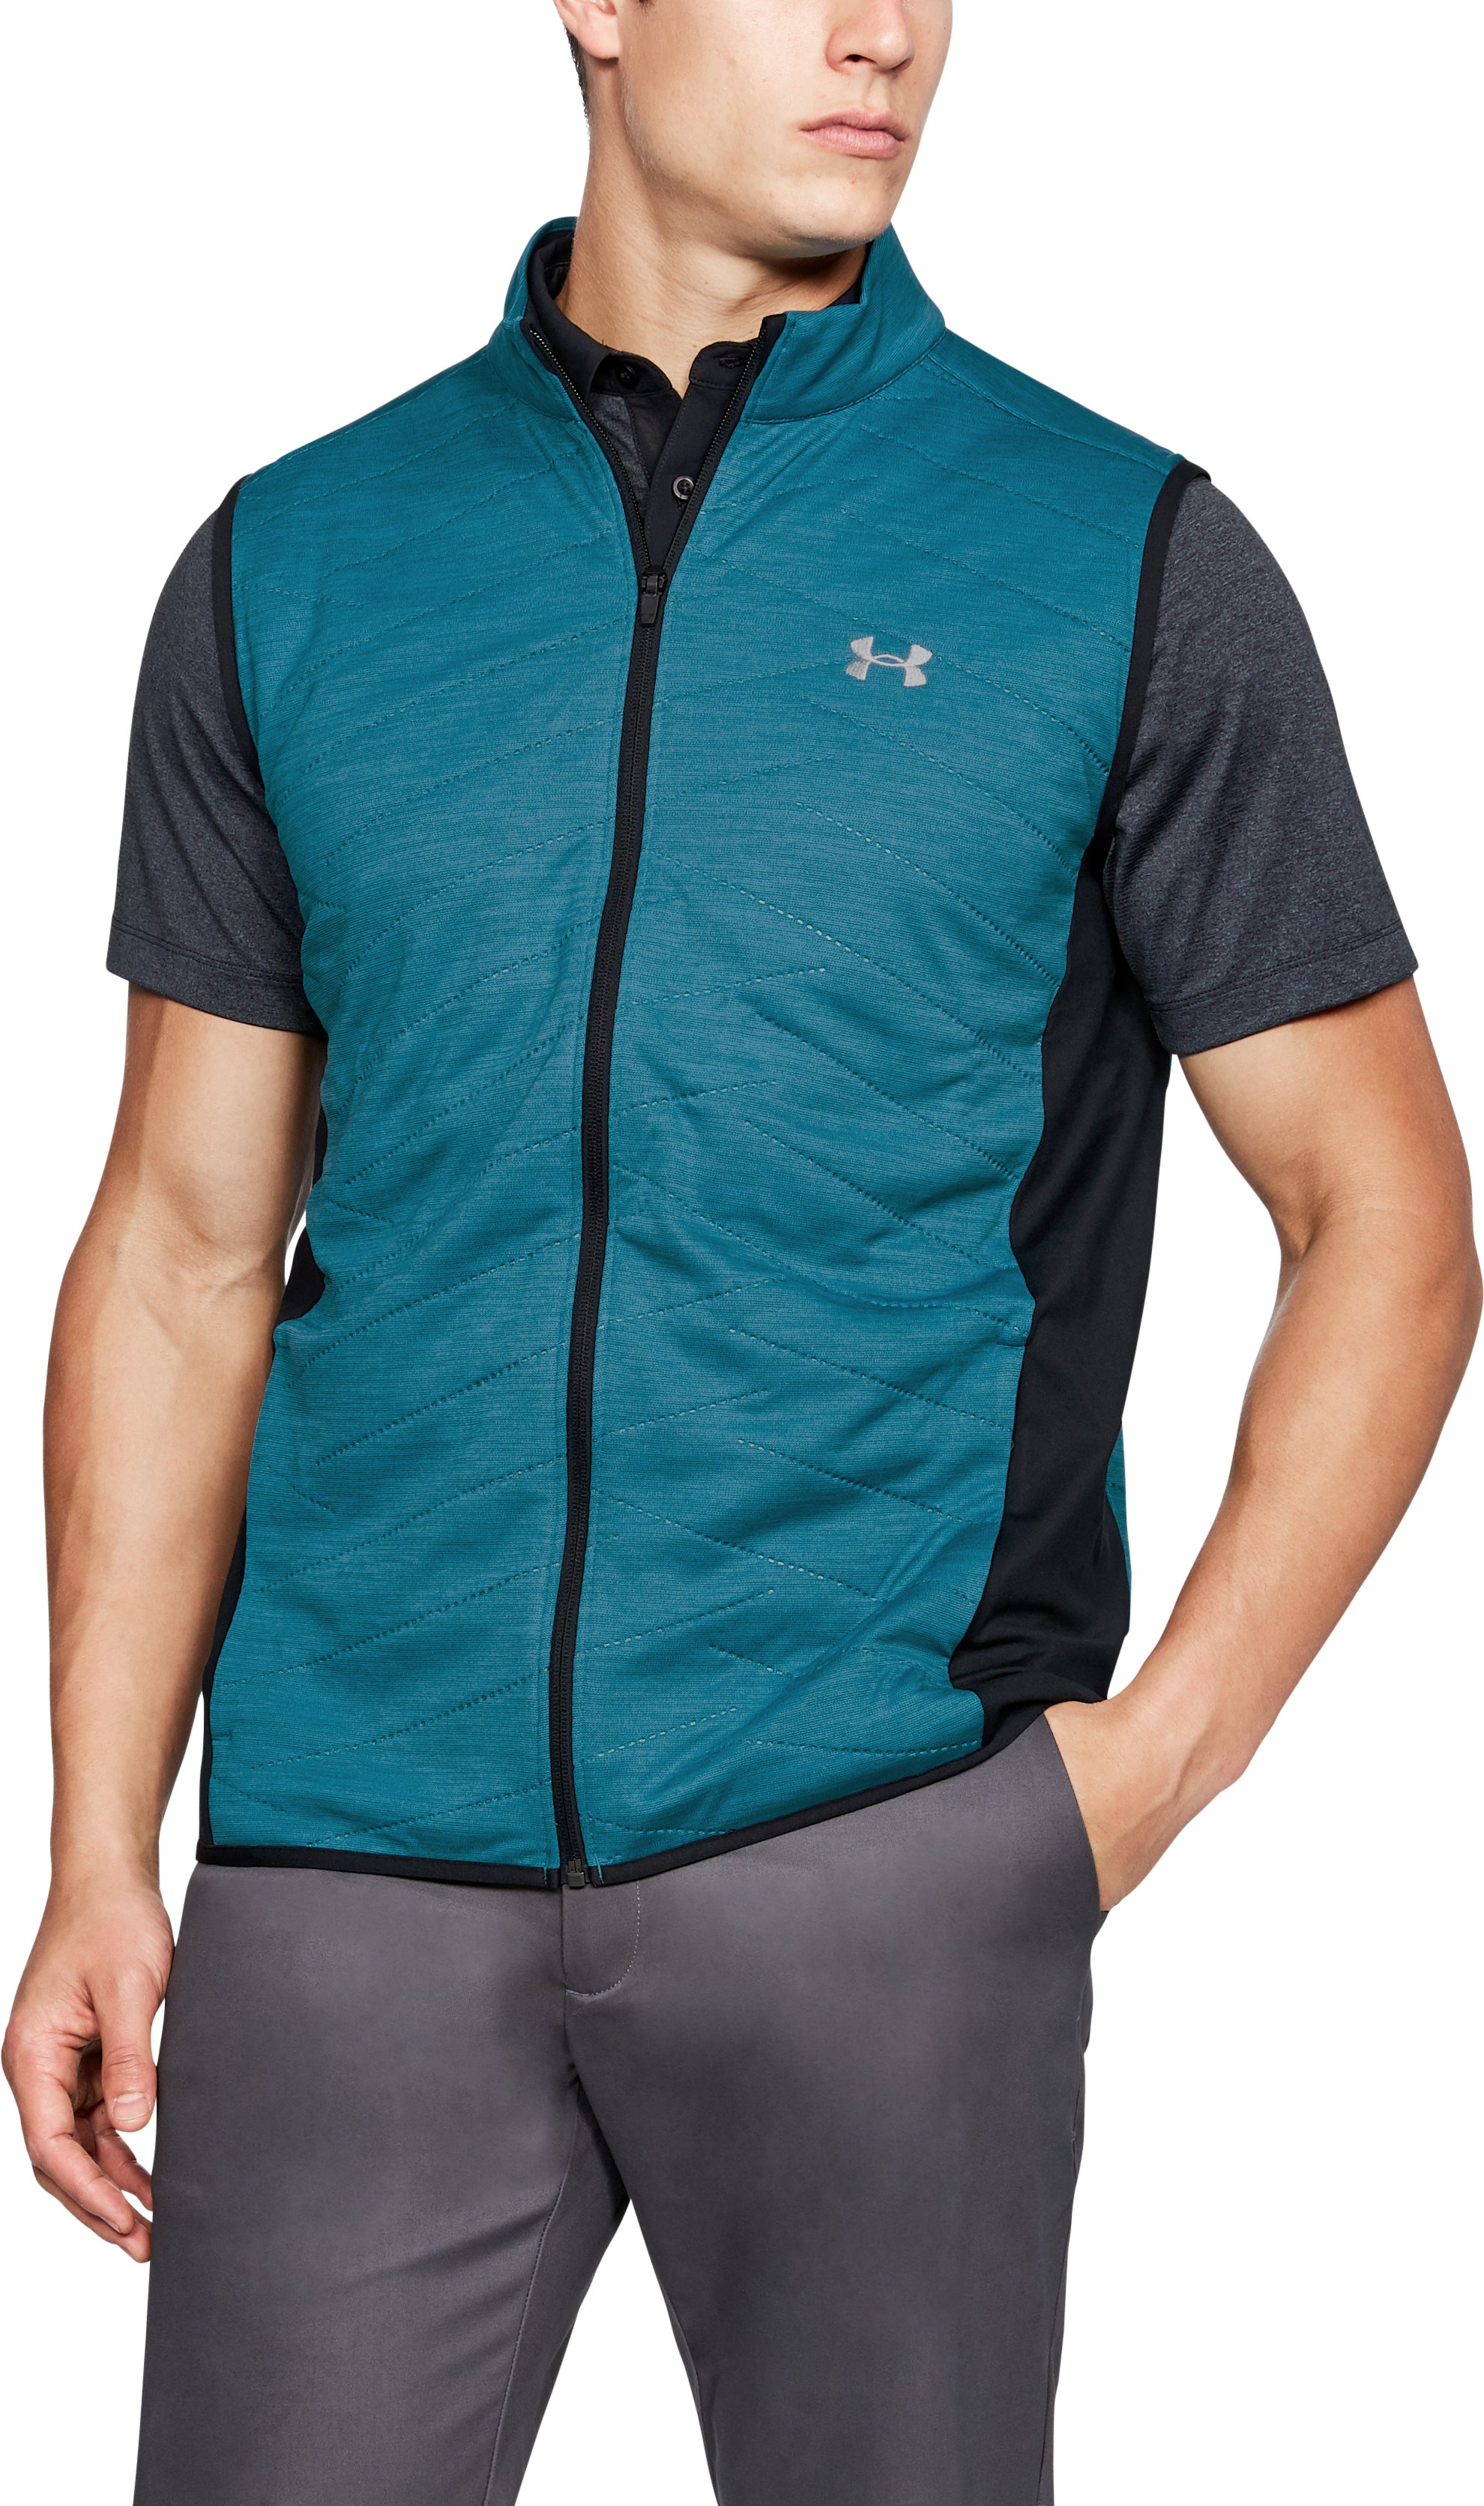 Men's ColdGear® Reactor Hybrid Vest, BAYOU BLUE, undefined